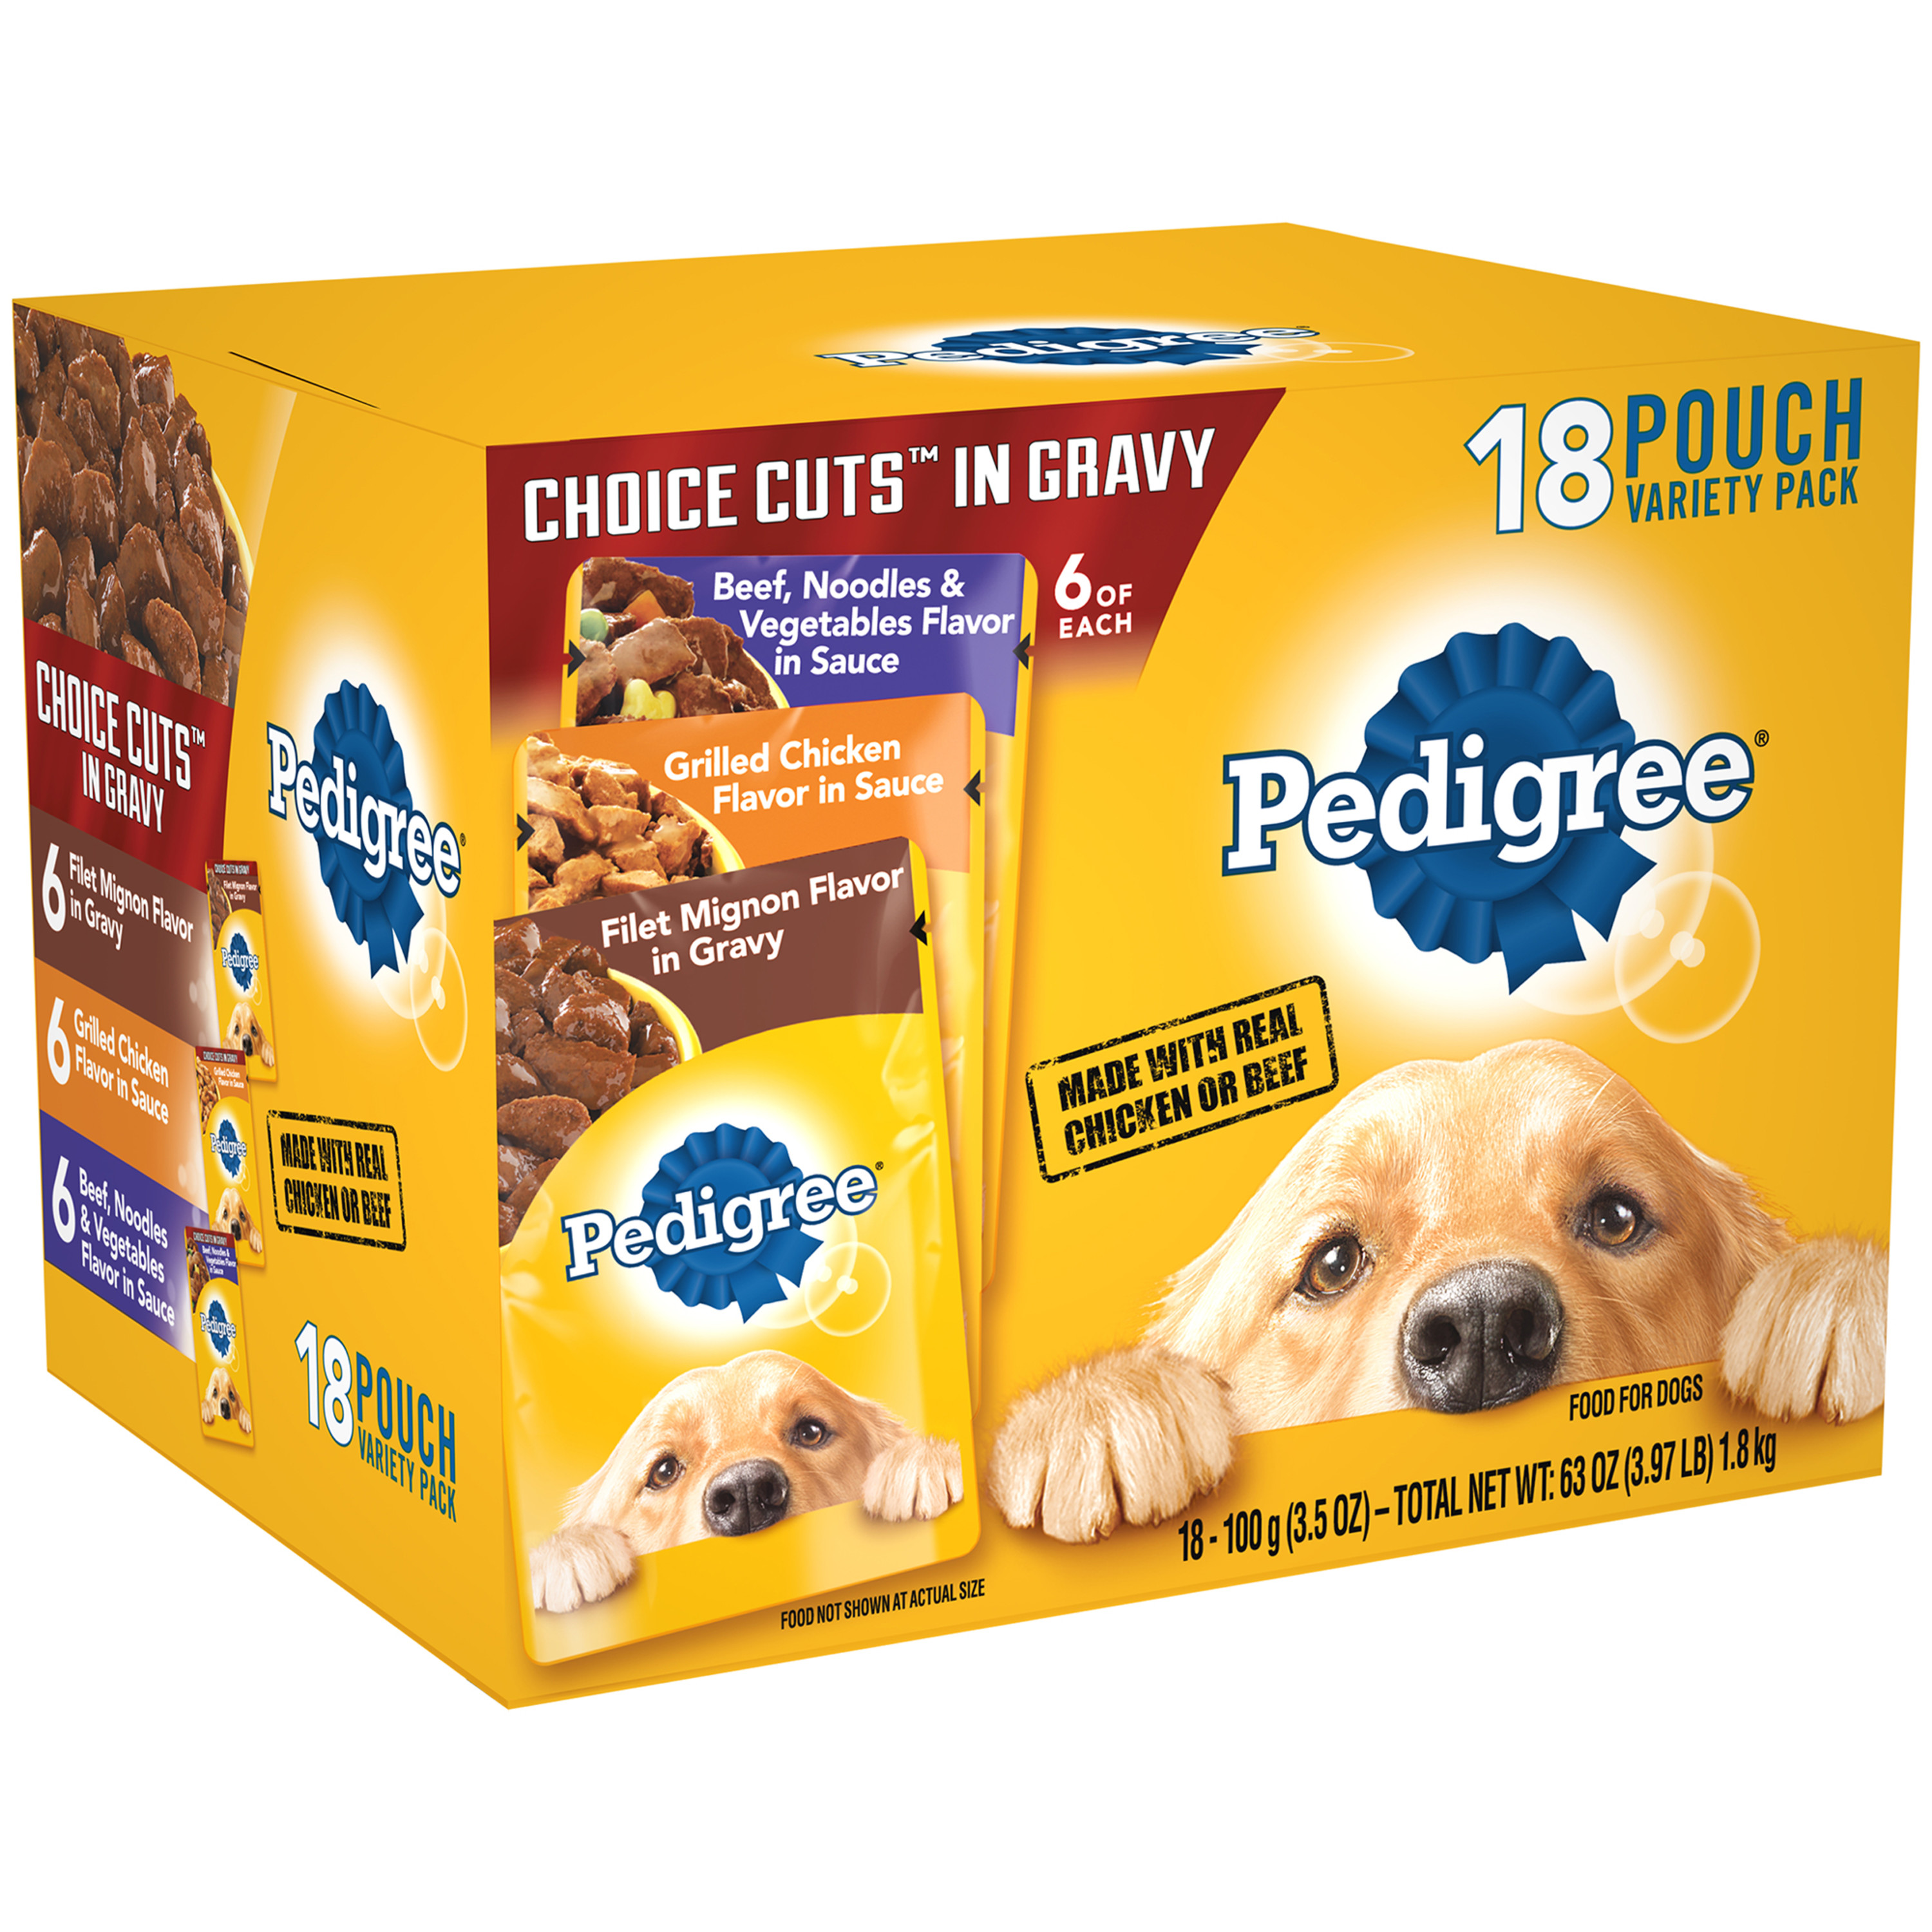 18 Pack Pedigree Choice Cuts In Gravy Adult Wet Dog Food Variety